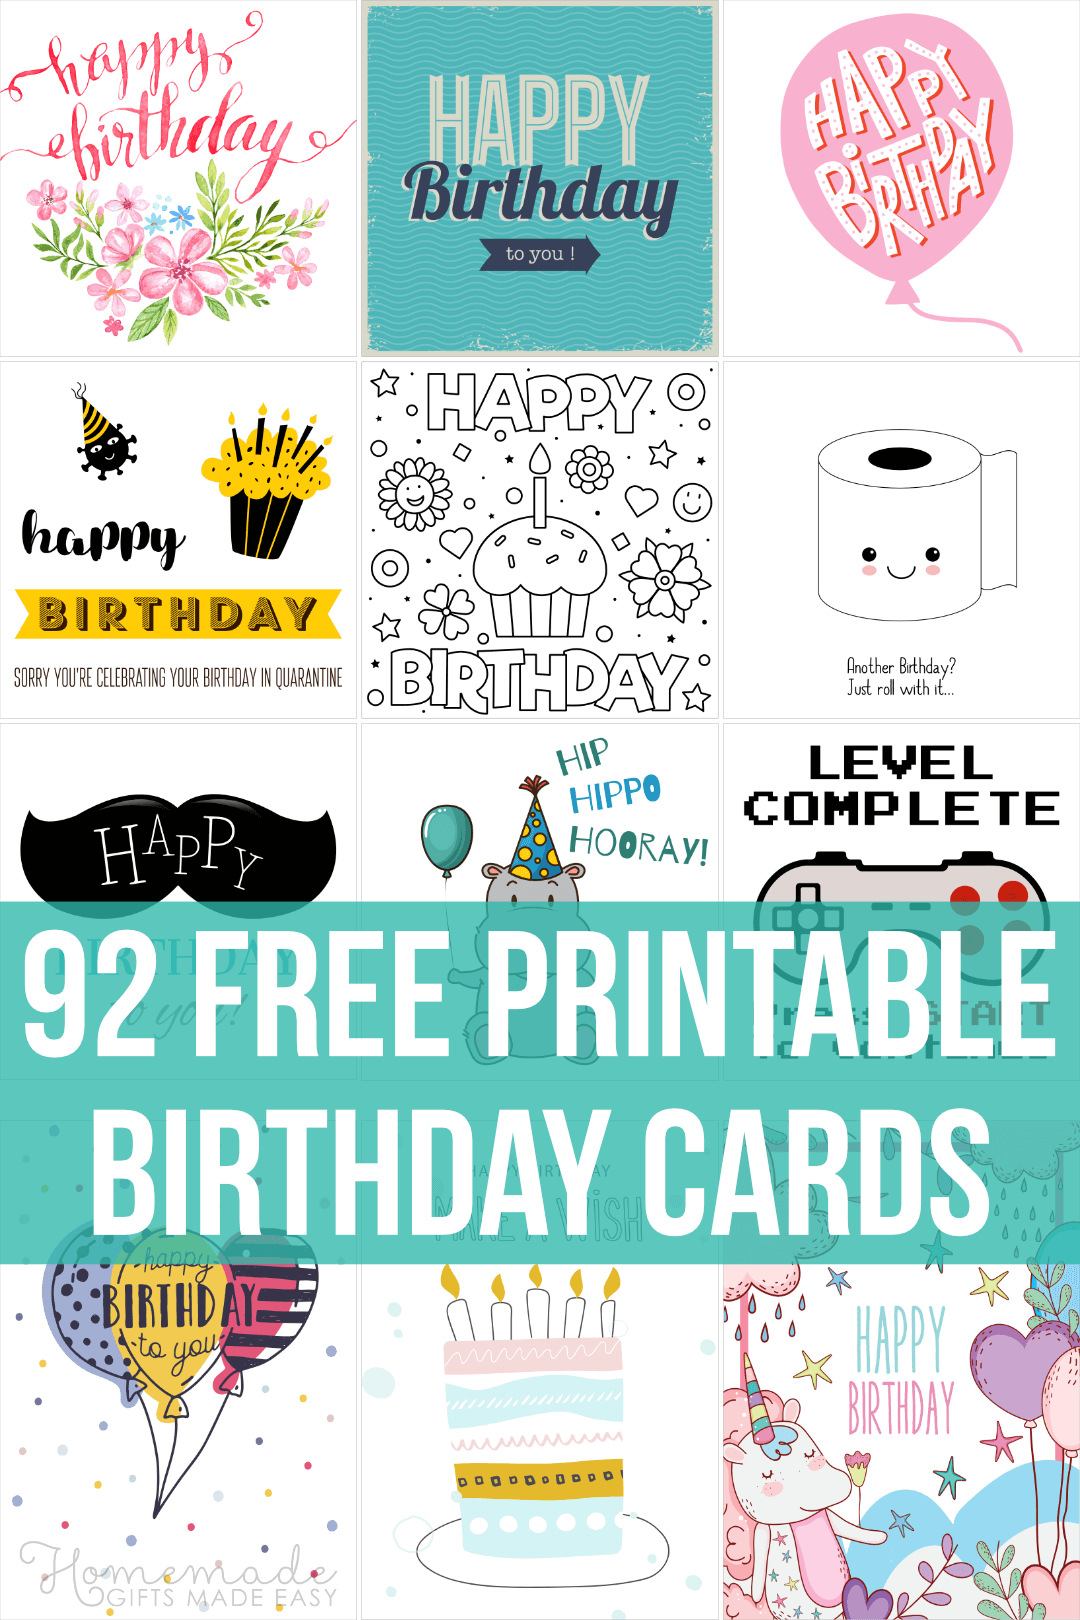 Printable Birthday Cards For Husband : printable, birthday, cards, husband, Inspirational, Birthday, Prayers, Friends, Family